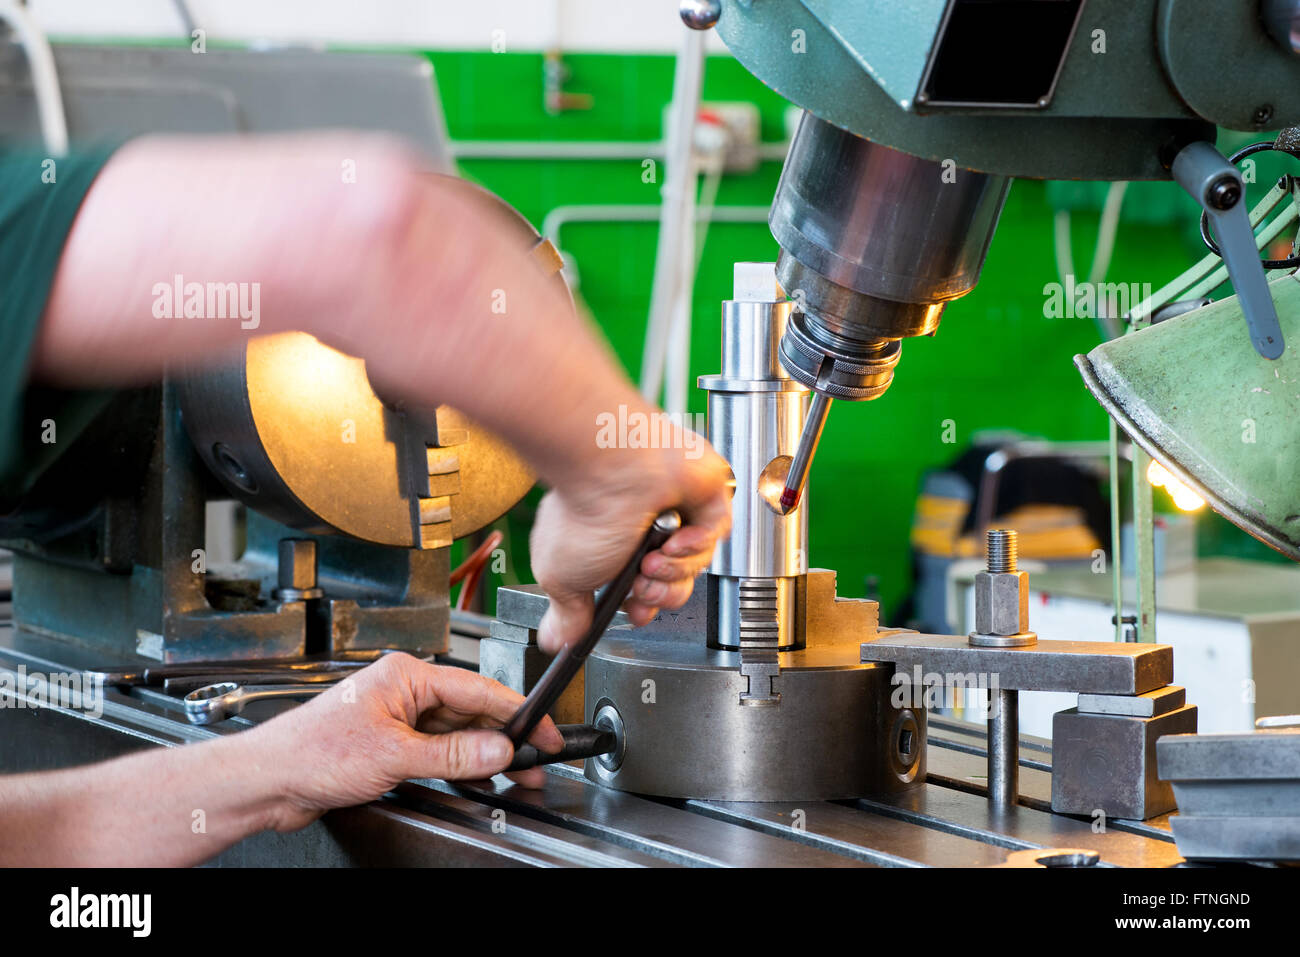 Close up view of the arms of a blue collar worker working on industrial machinery in an engineering factory or workshop - Stock Image